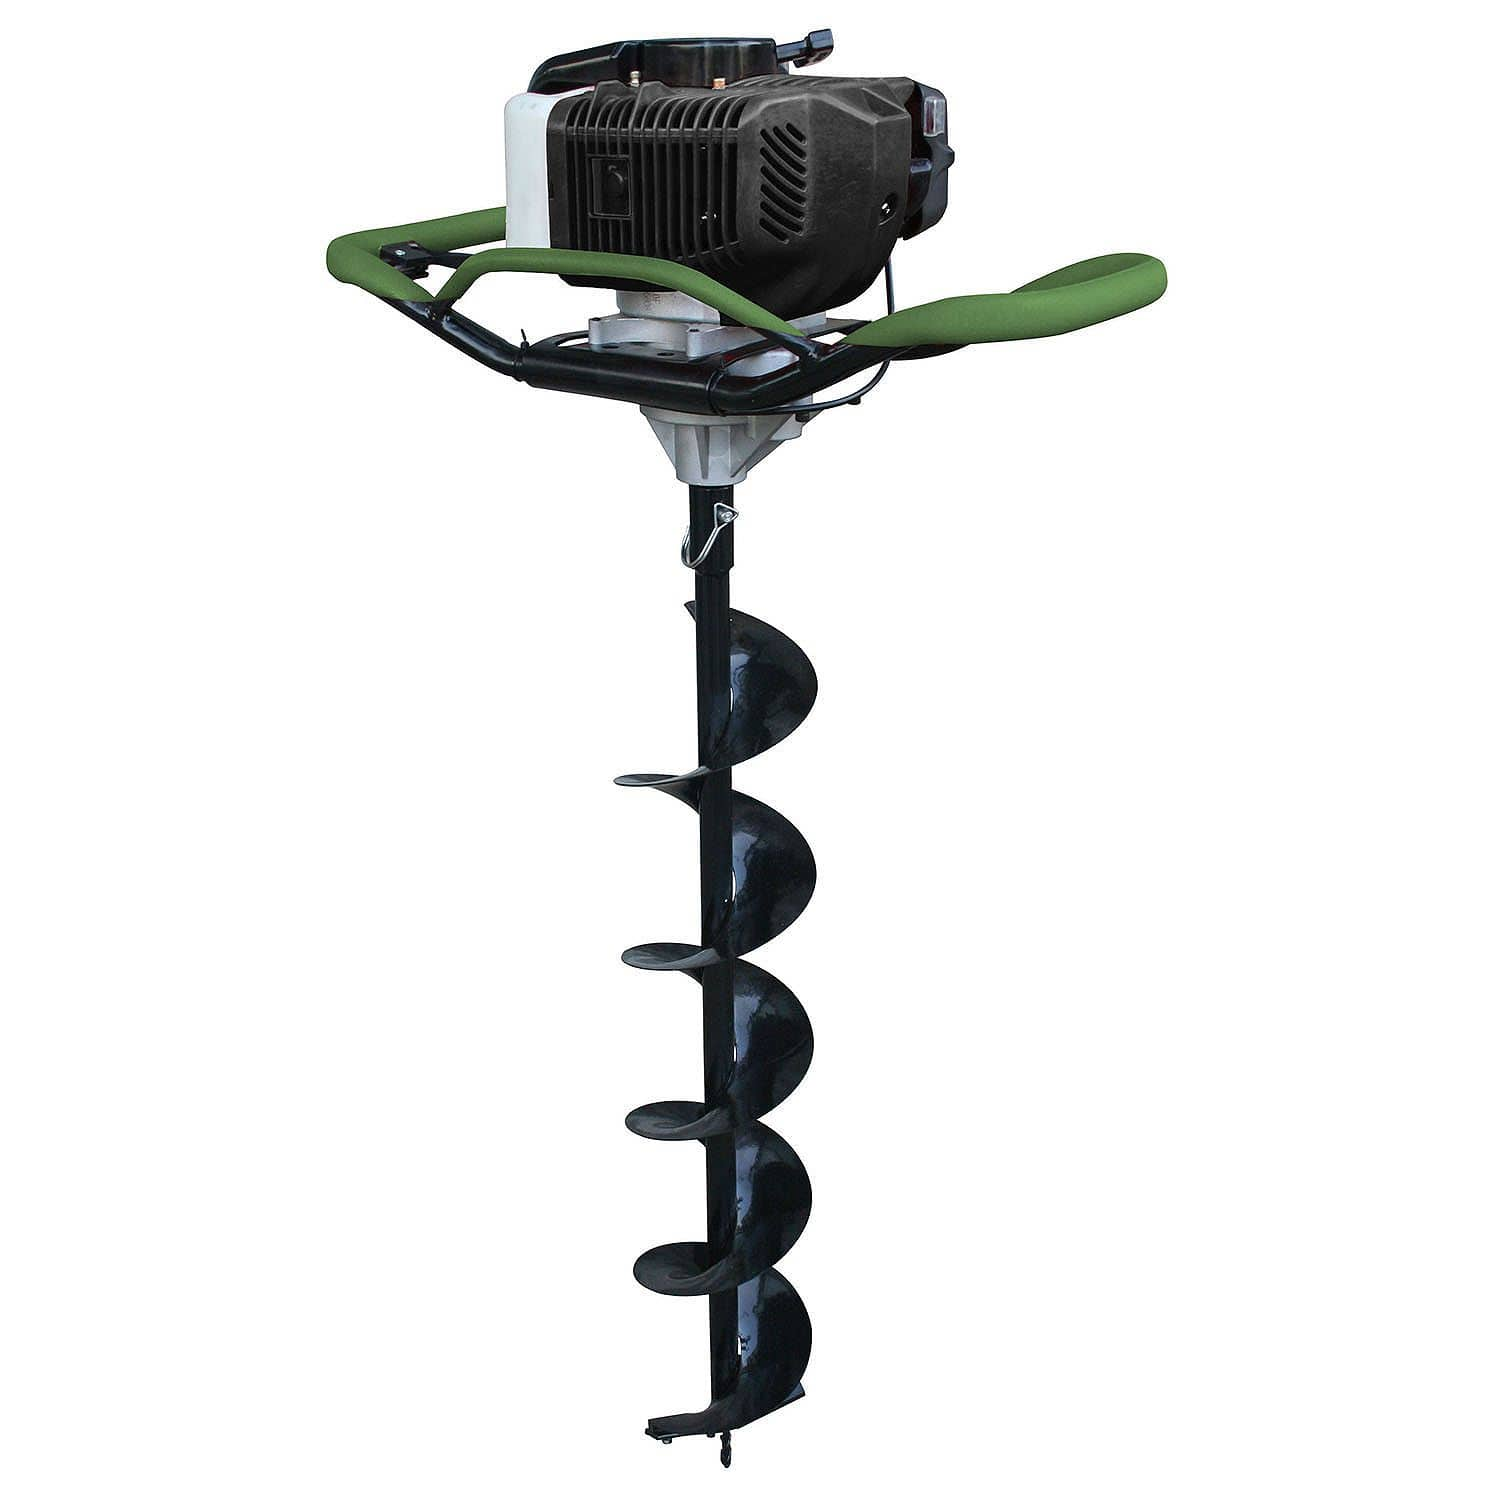 "Sam's Club Sportsman Earth Series 6"" Gas Powered Auger- $139.98"